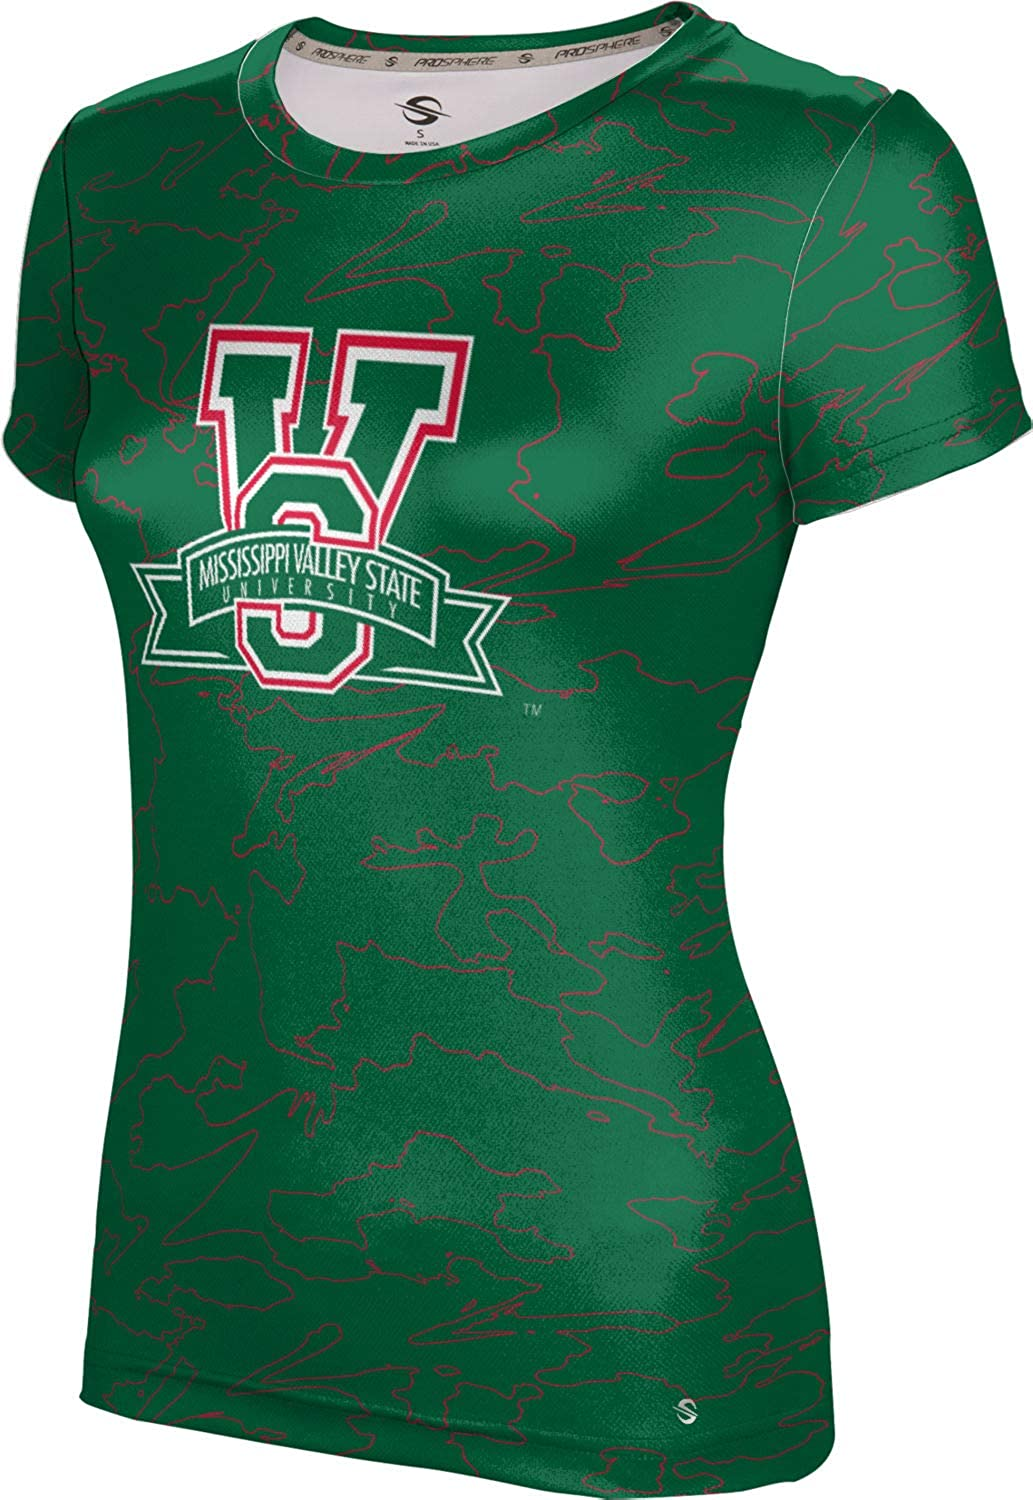 ProSphere Mississippi Valley State University Girls' Performance T-Shirt (Topography)